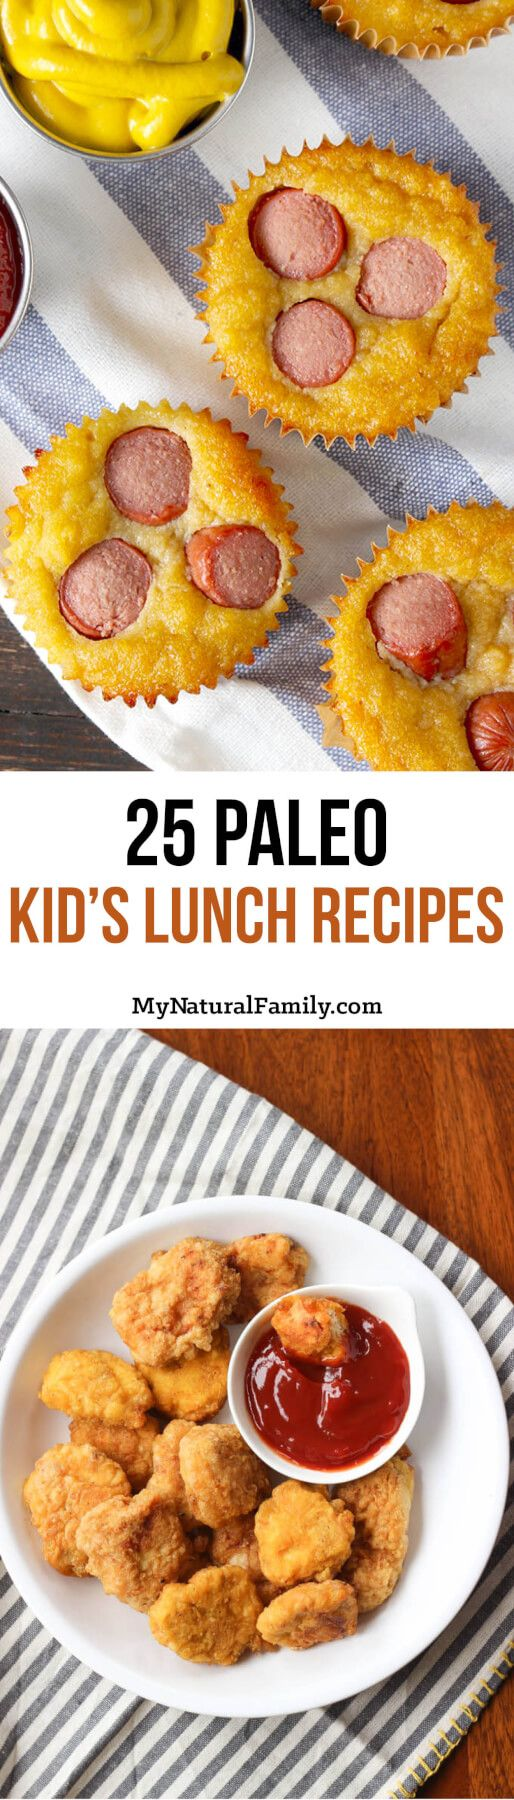 - My son is on a Paleo diet and believe me, I know how hard it is. That is why I made this list of 25 Paleo Kids Lunch Recipes.